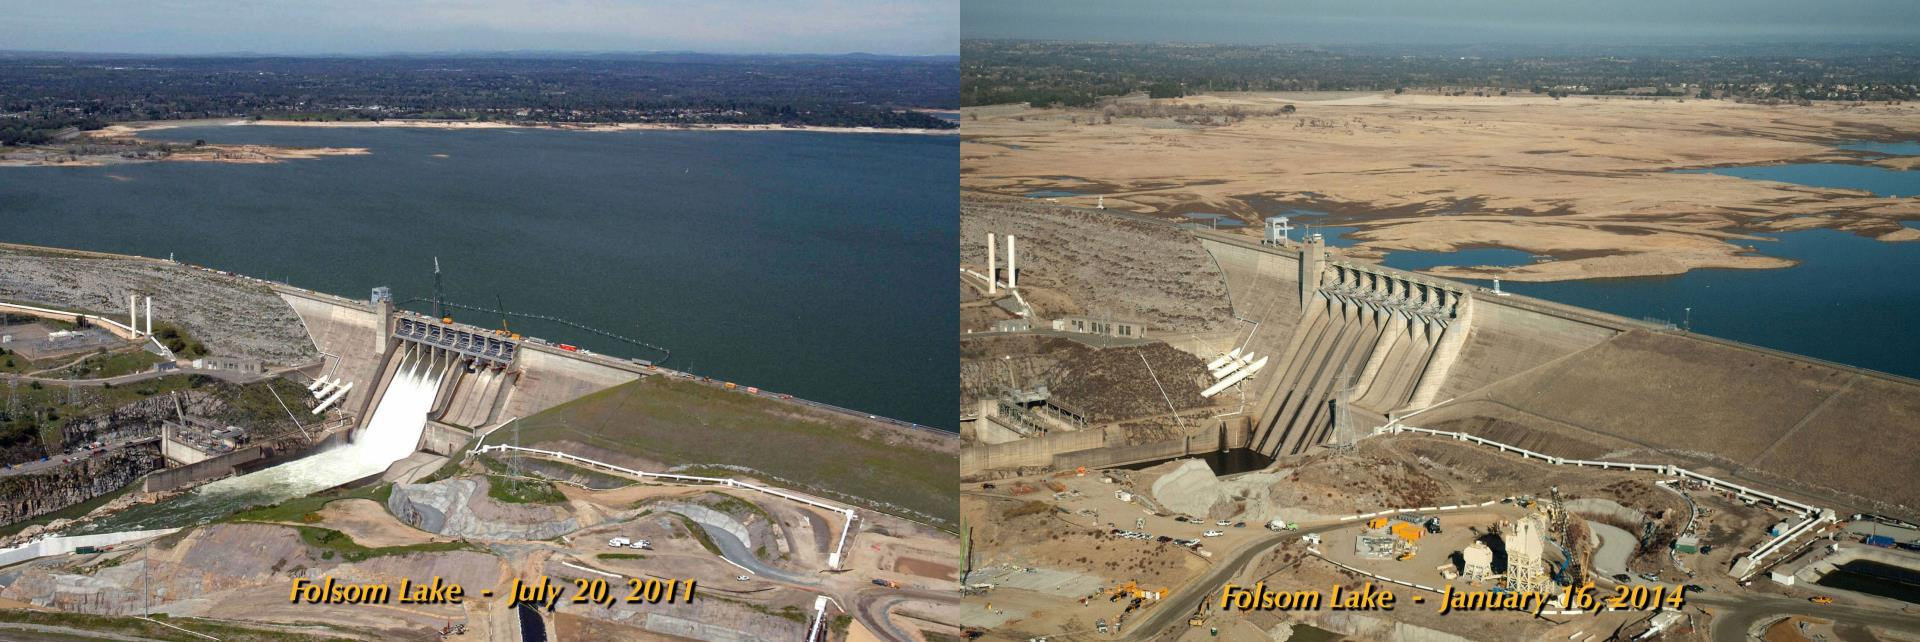 Folsom Lake Before and After Drought